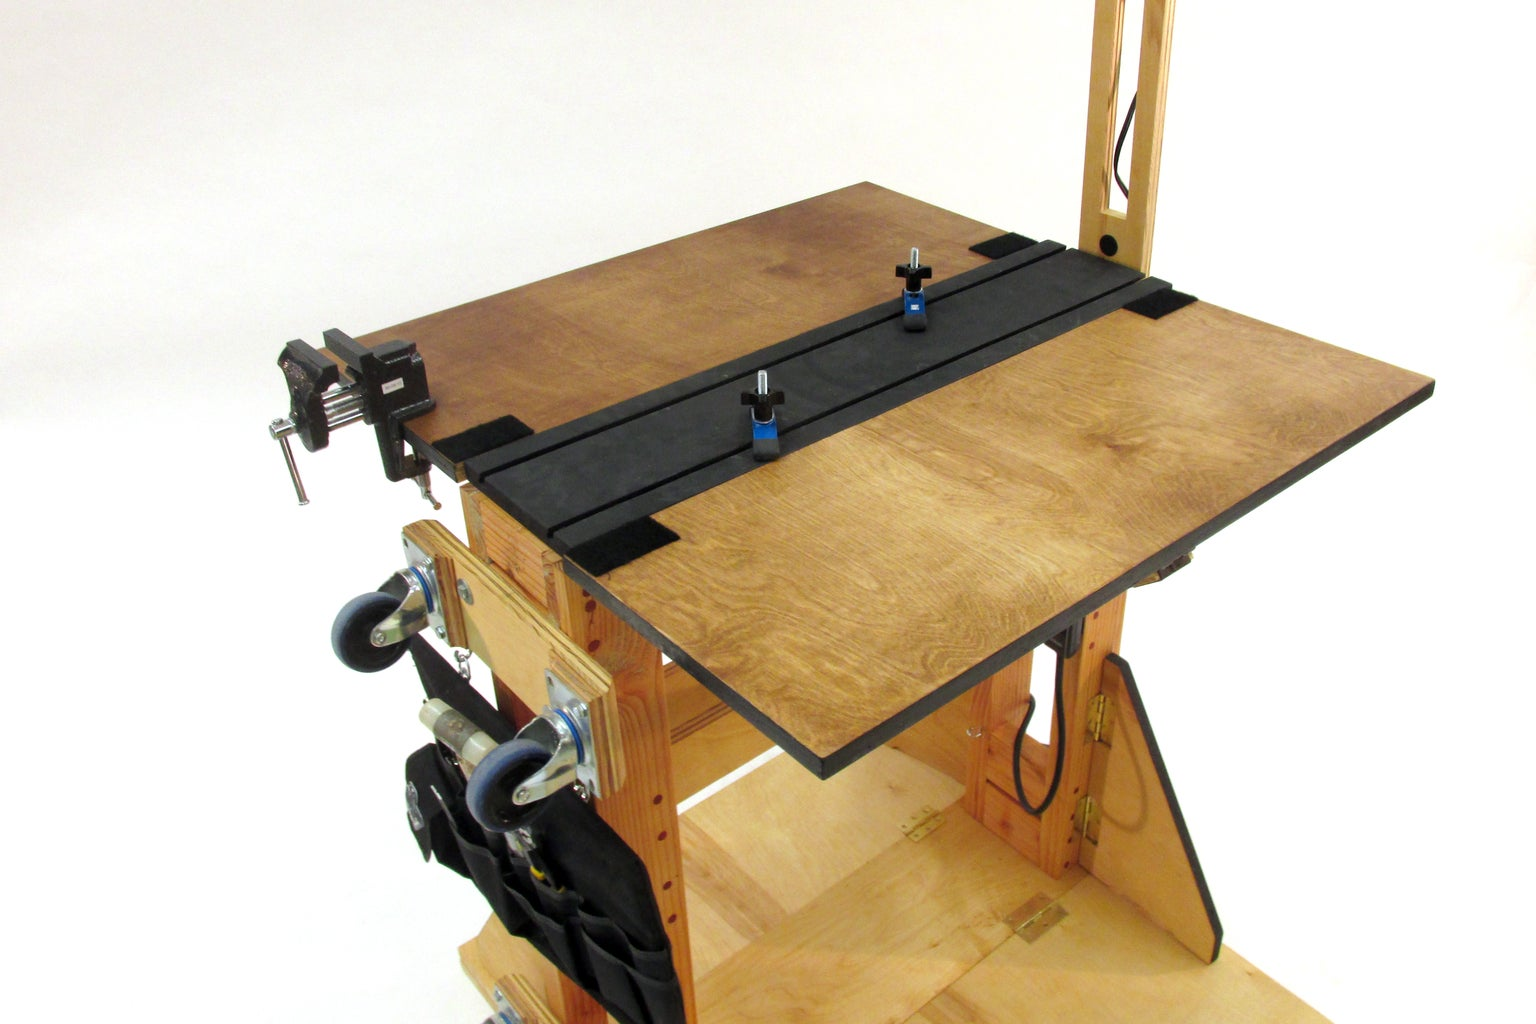 Optional Specialized Table Top #1 the Work Holder